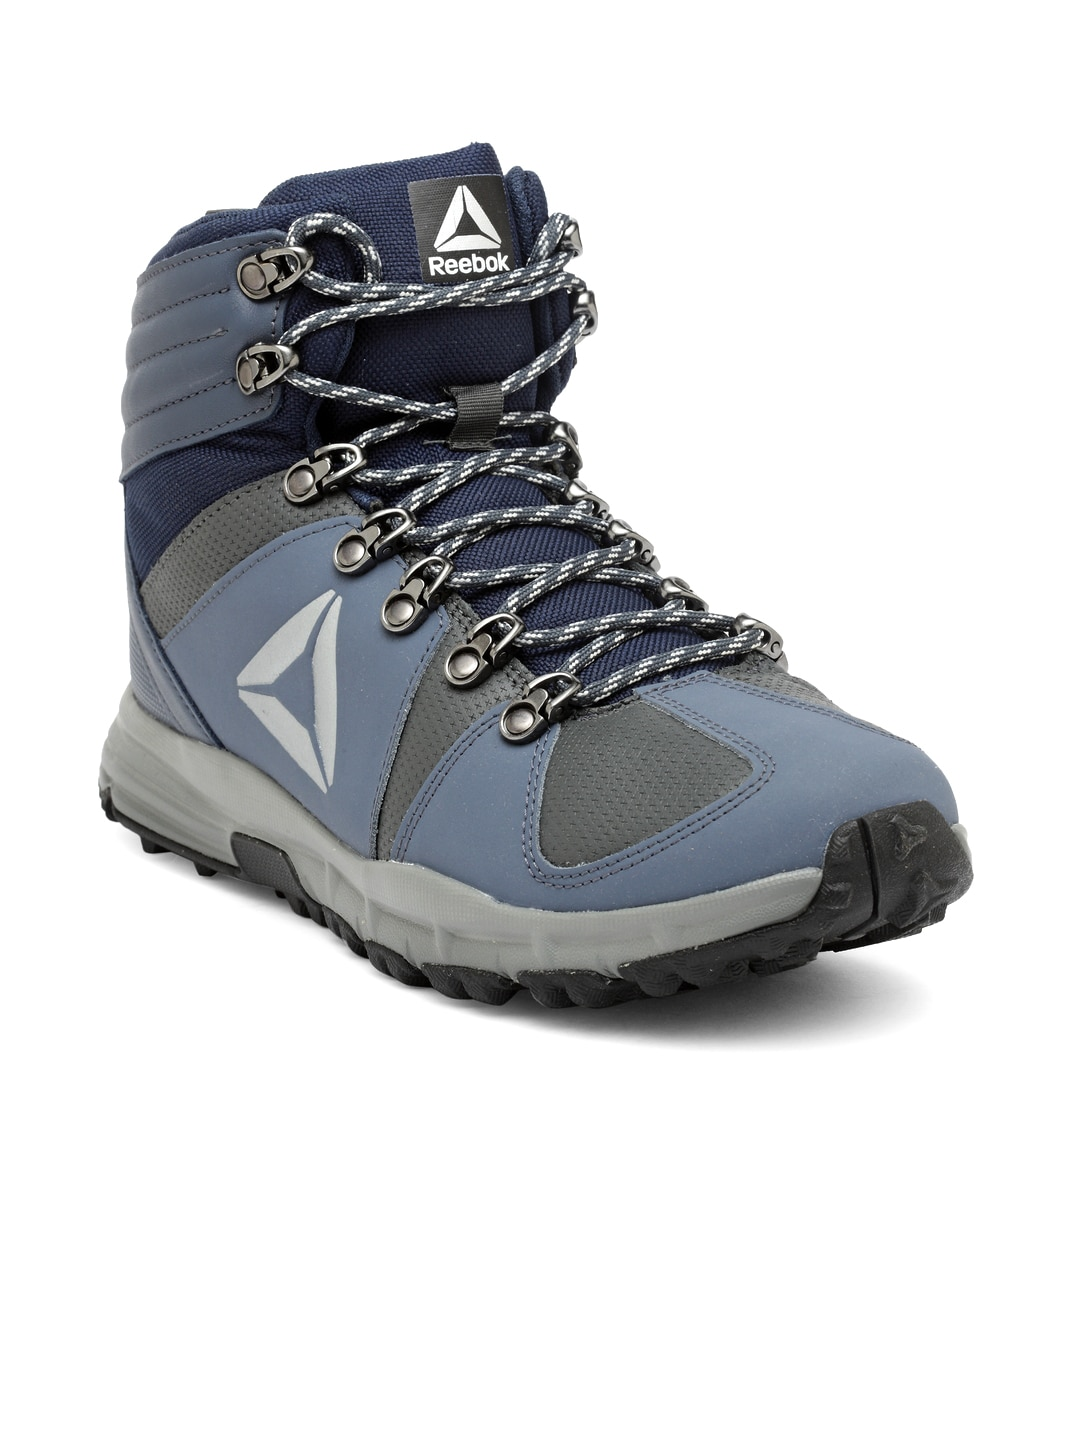 Reebok Trek Trekking Sports Shoes - Buy Reebok Trek Trekking Sports Shoes  online in India c9e109491